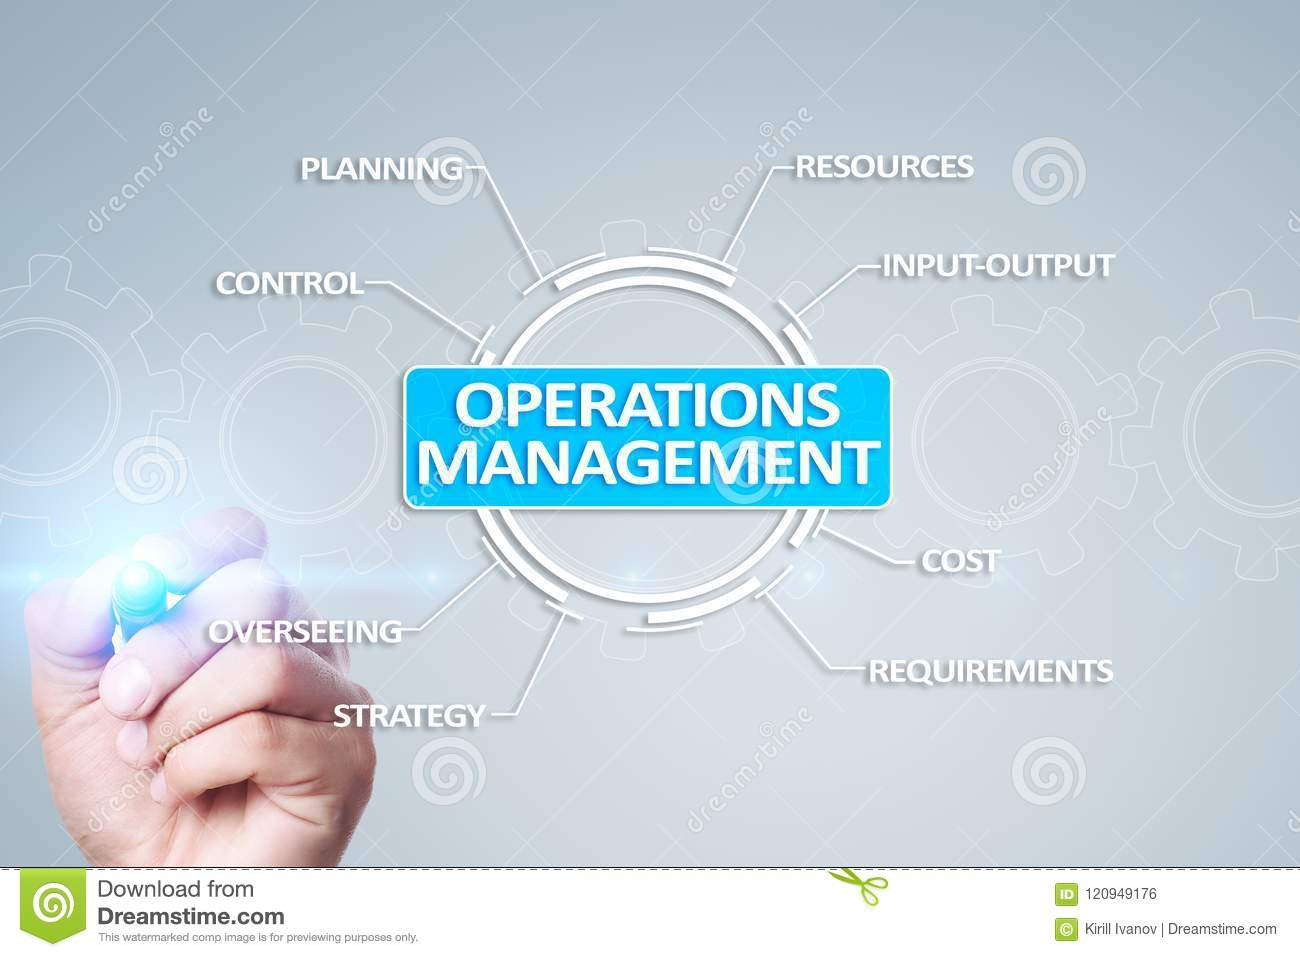 Time Management And Technology: Operations Management Business And Technology Concept On